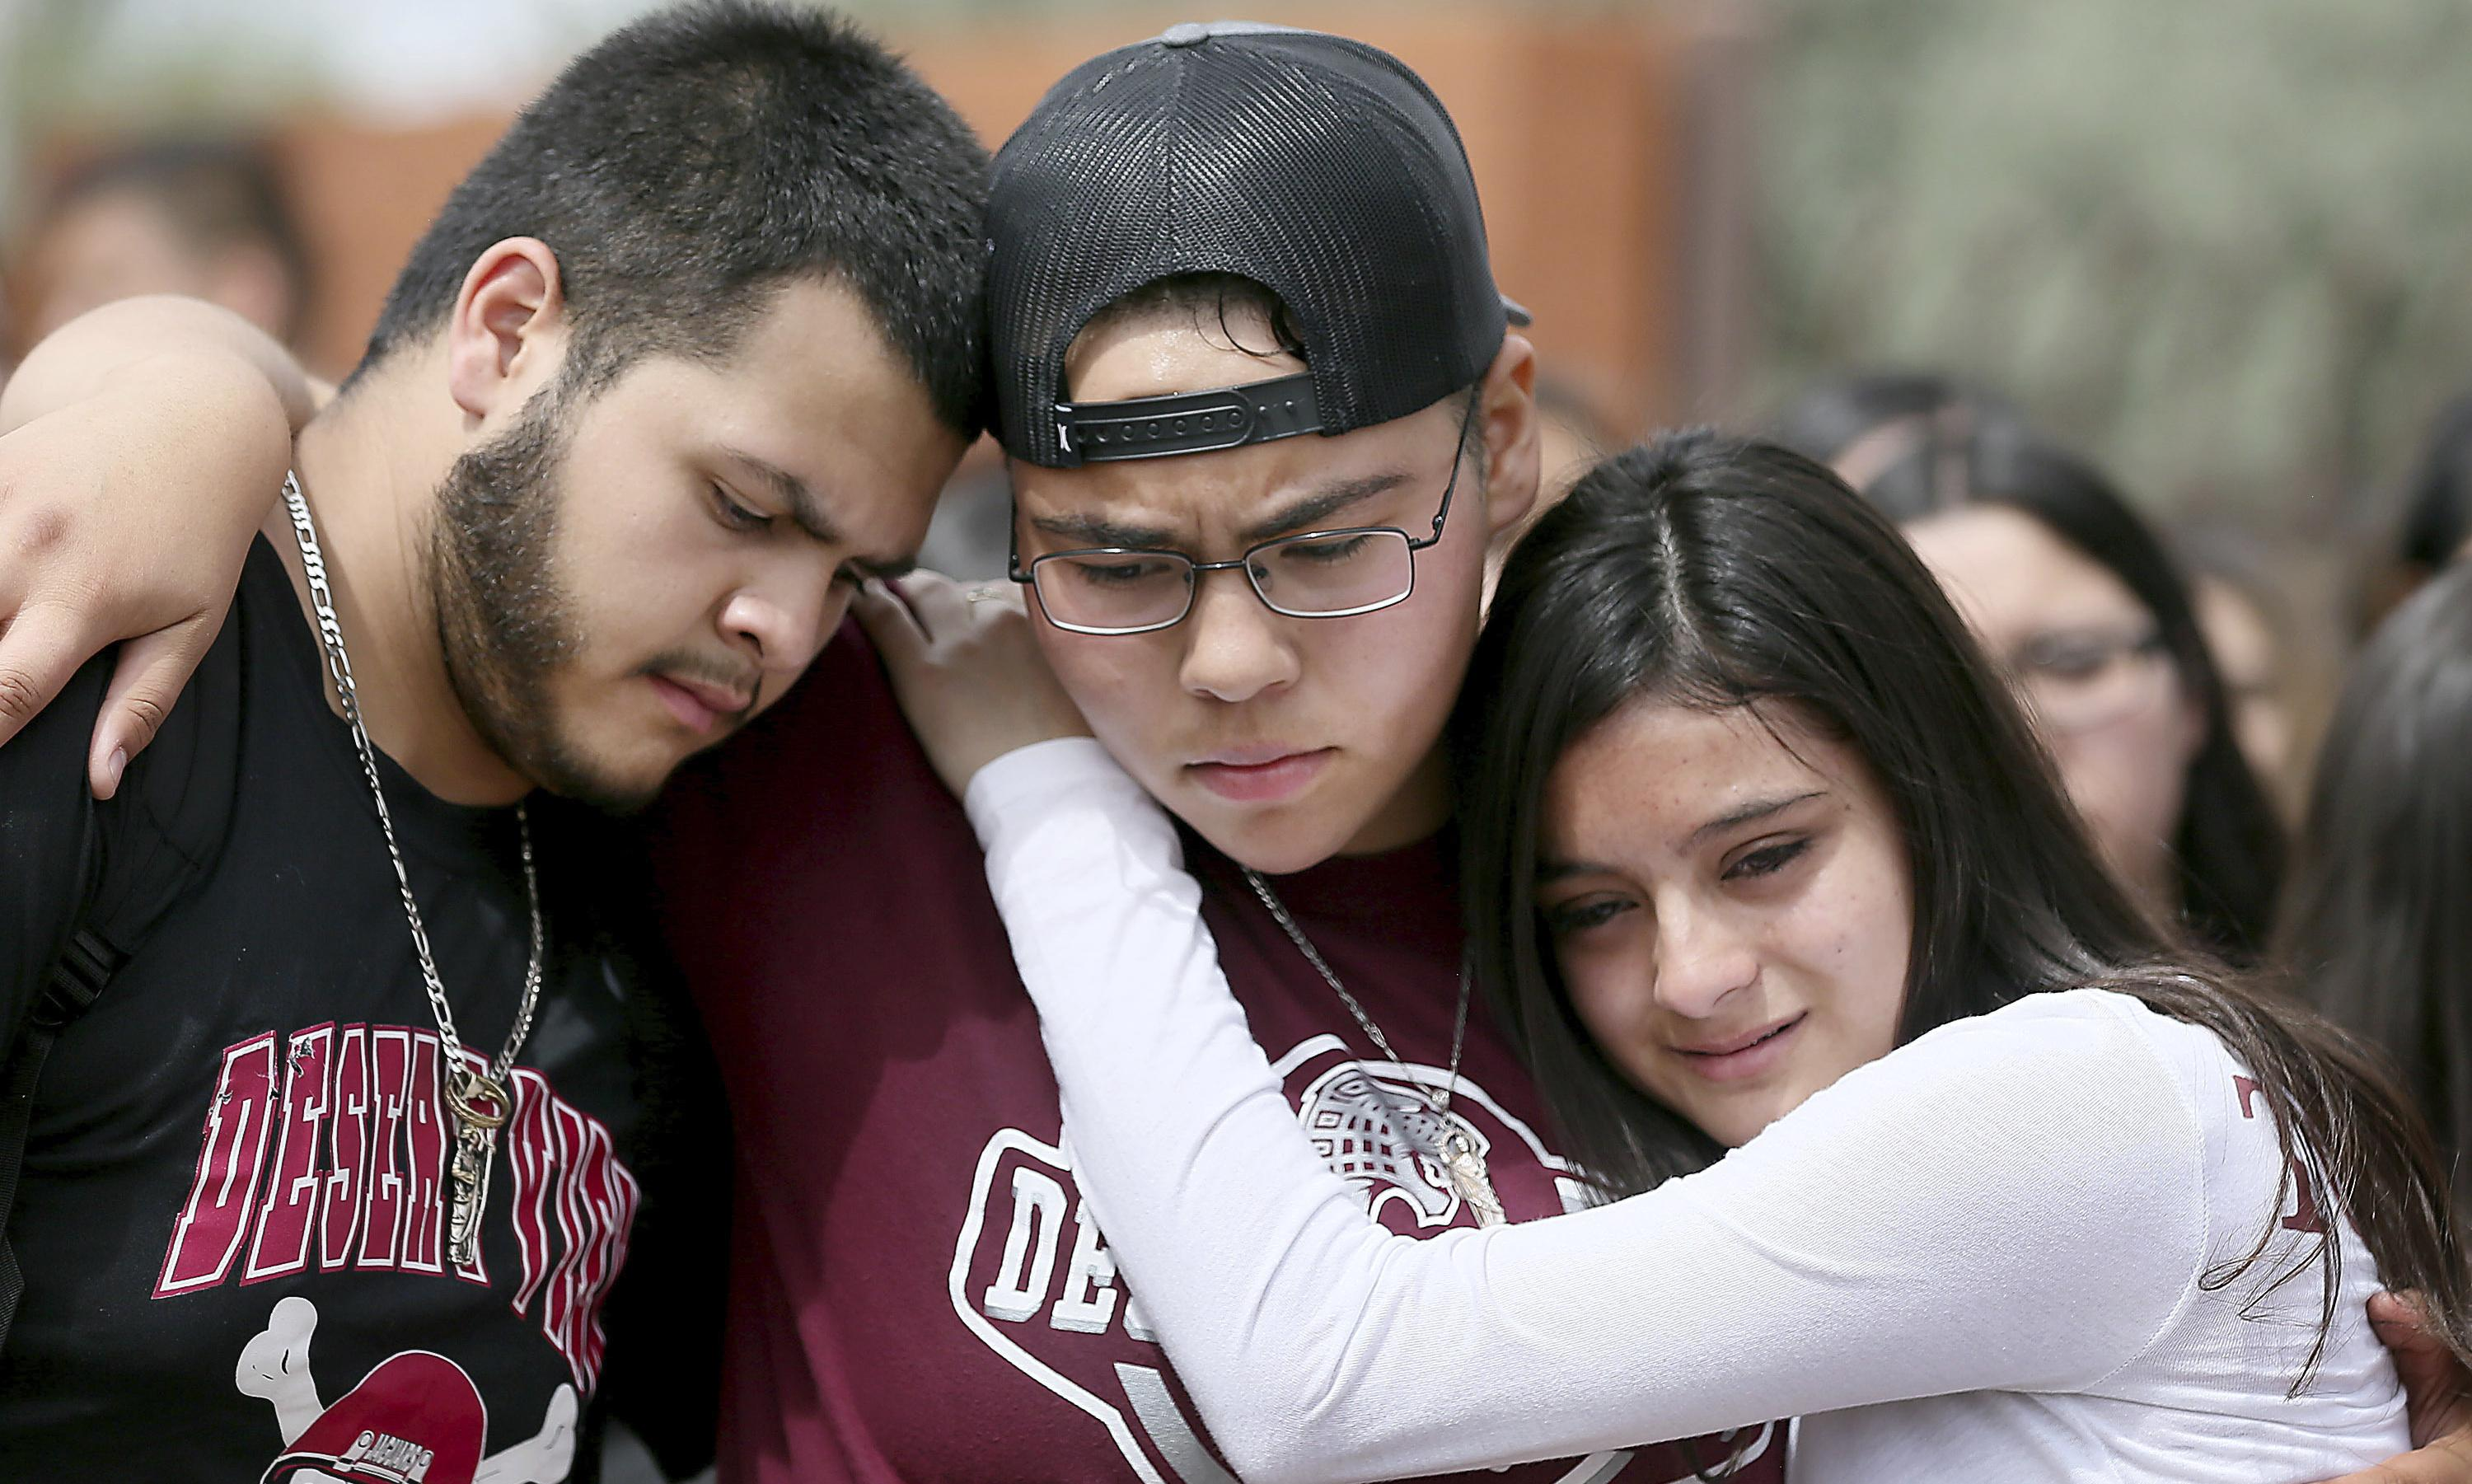 Arizona students march to protest football player's potential deportation